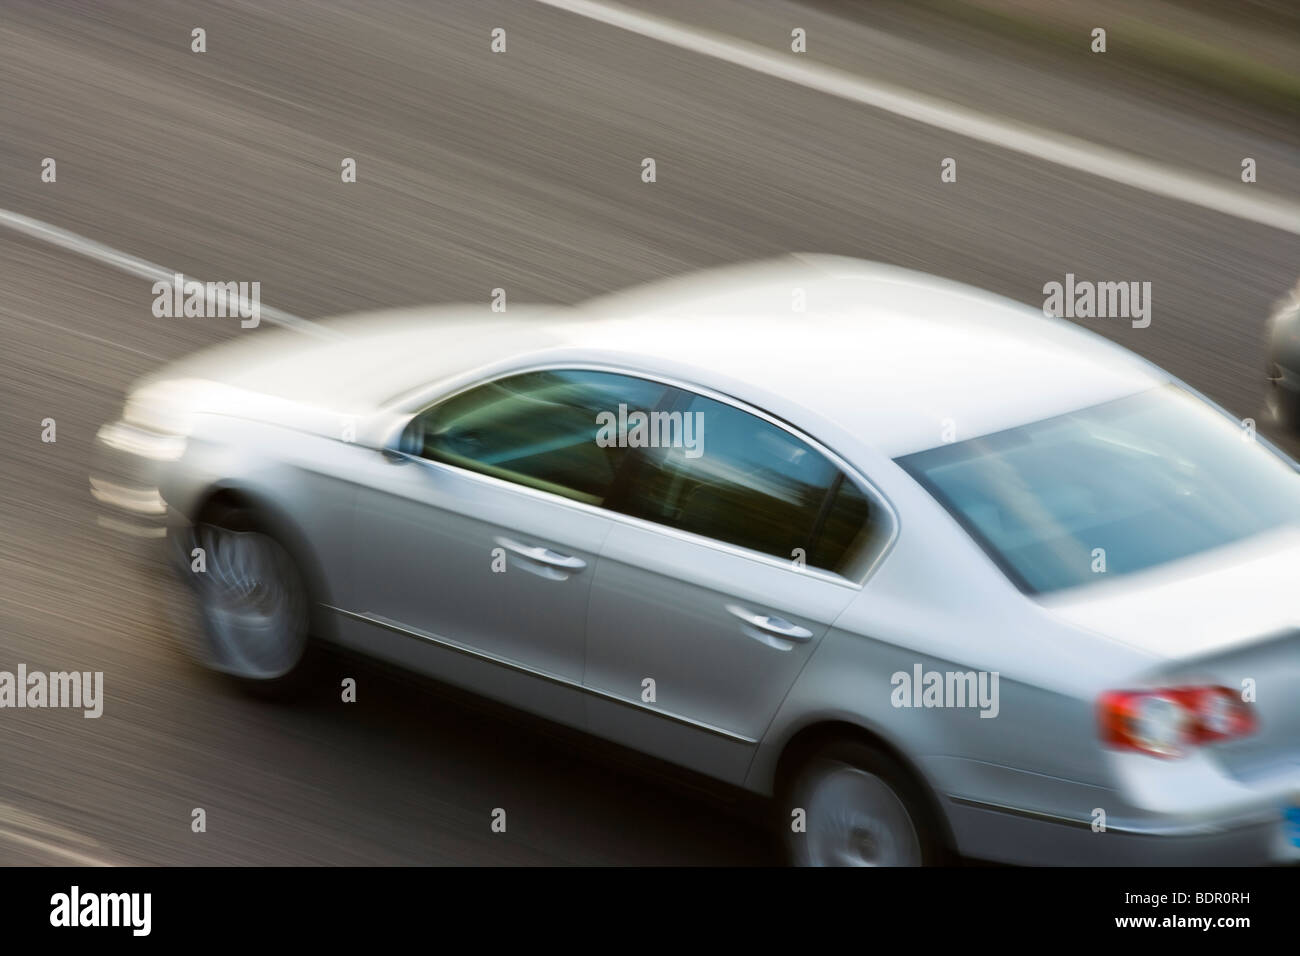 Voiture sur autoroute. UK Photo Stock